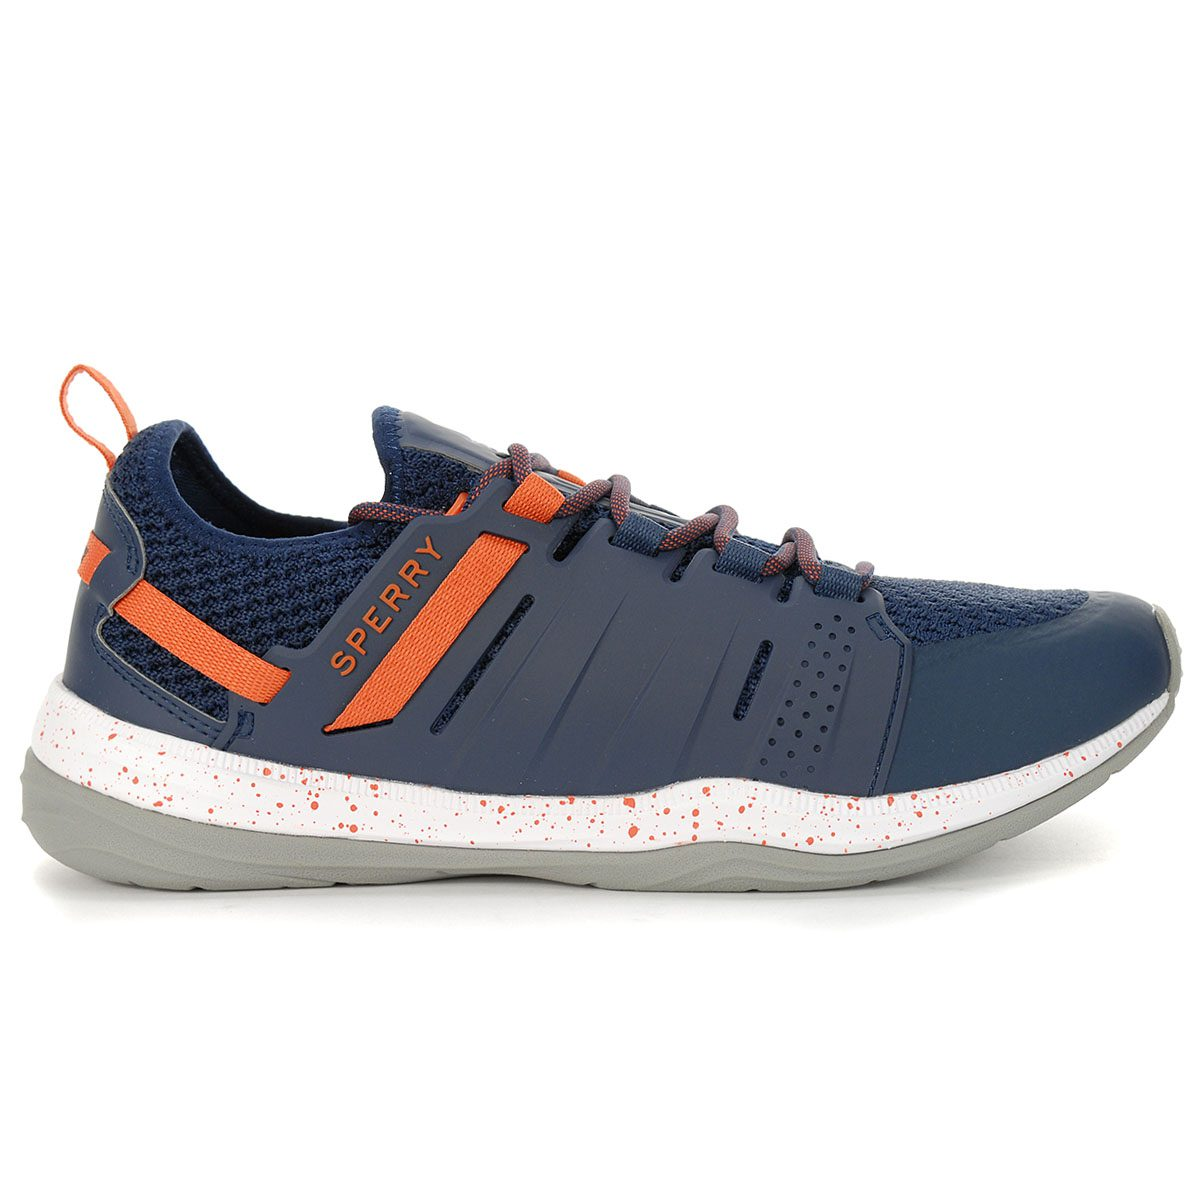 Sperry Top-Sider Men's H20 Mainstay